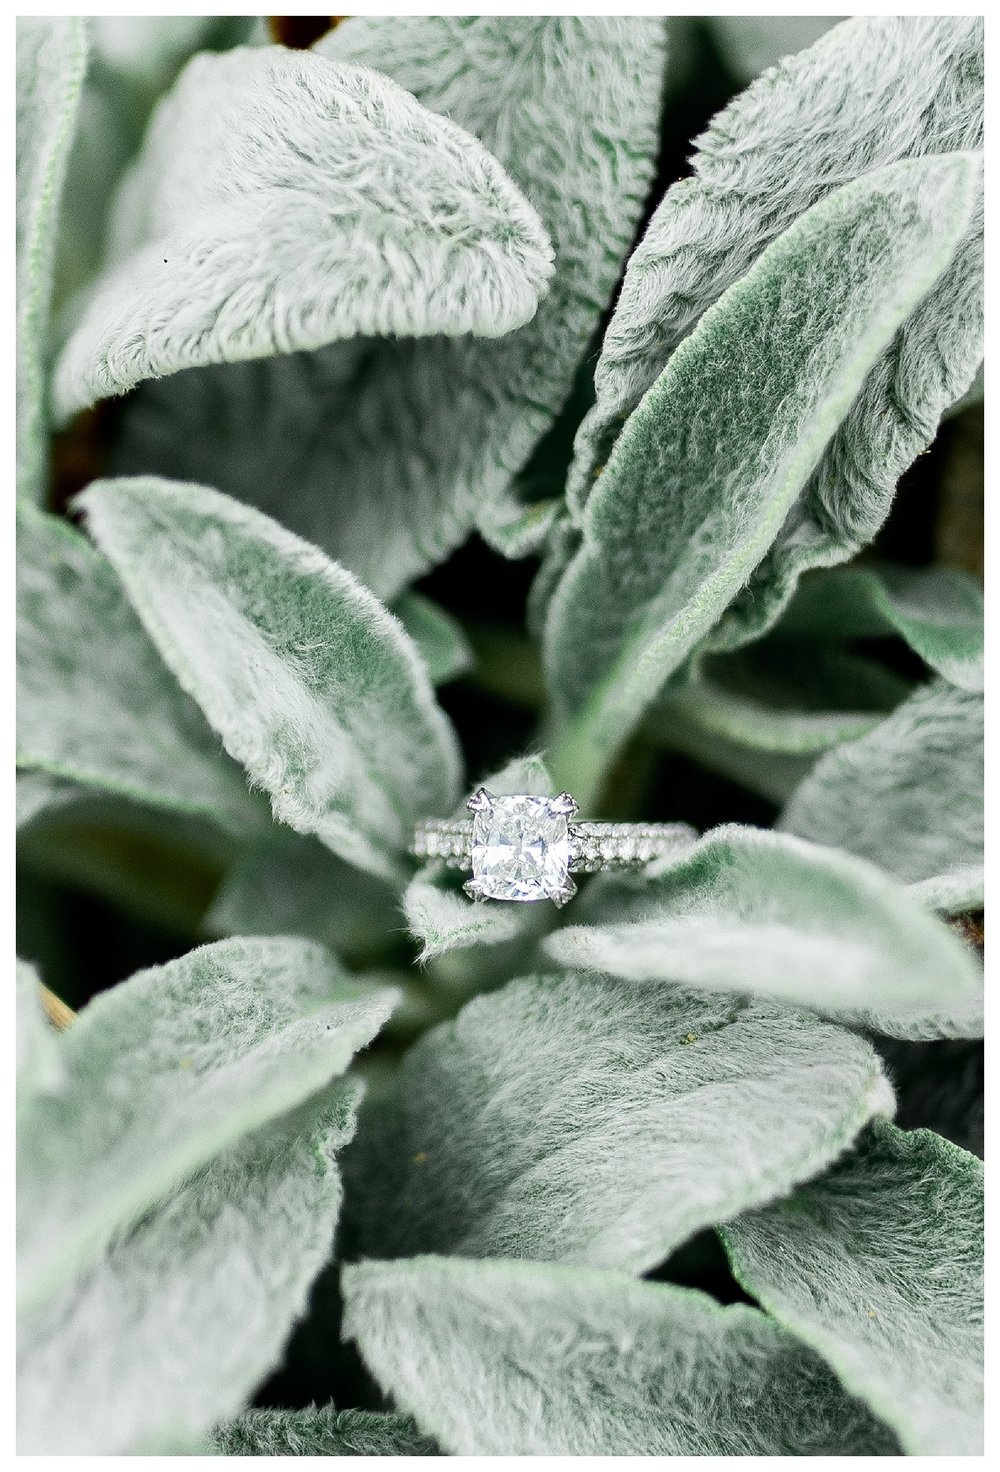 everleigh-photography-cincinnati-wedding-photographer-loveland-castle-cincinnati-engagement-photographer-21